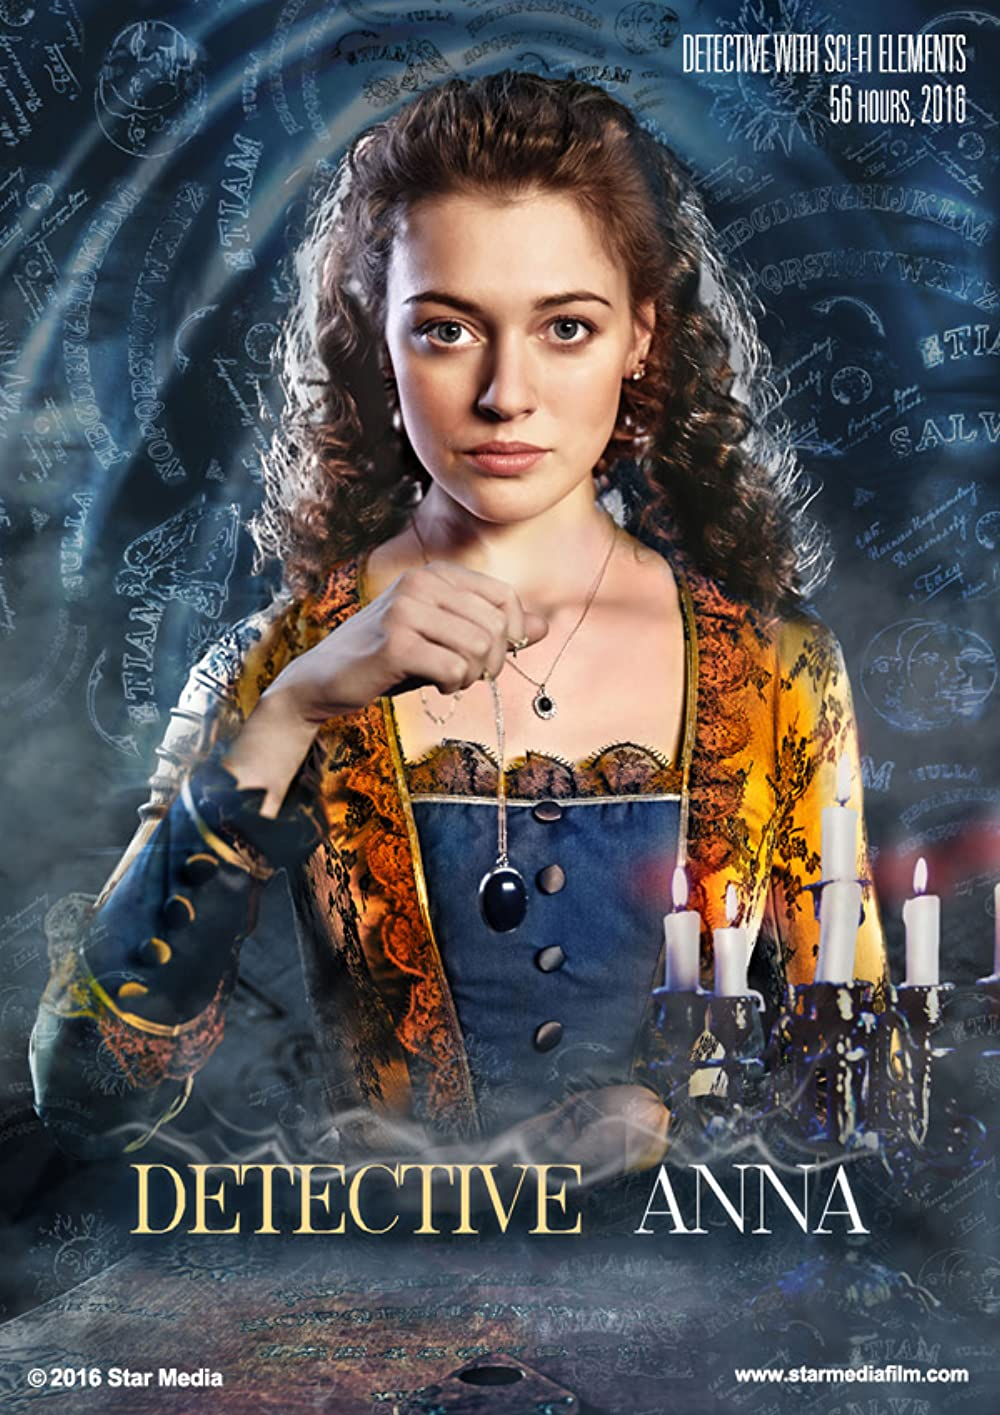 Detective Anna S01 (2020) E01-31 Hindi Dubbed MX Web Series 1GB HDRip Download